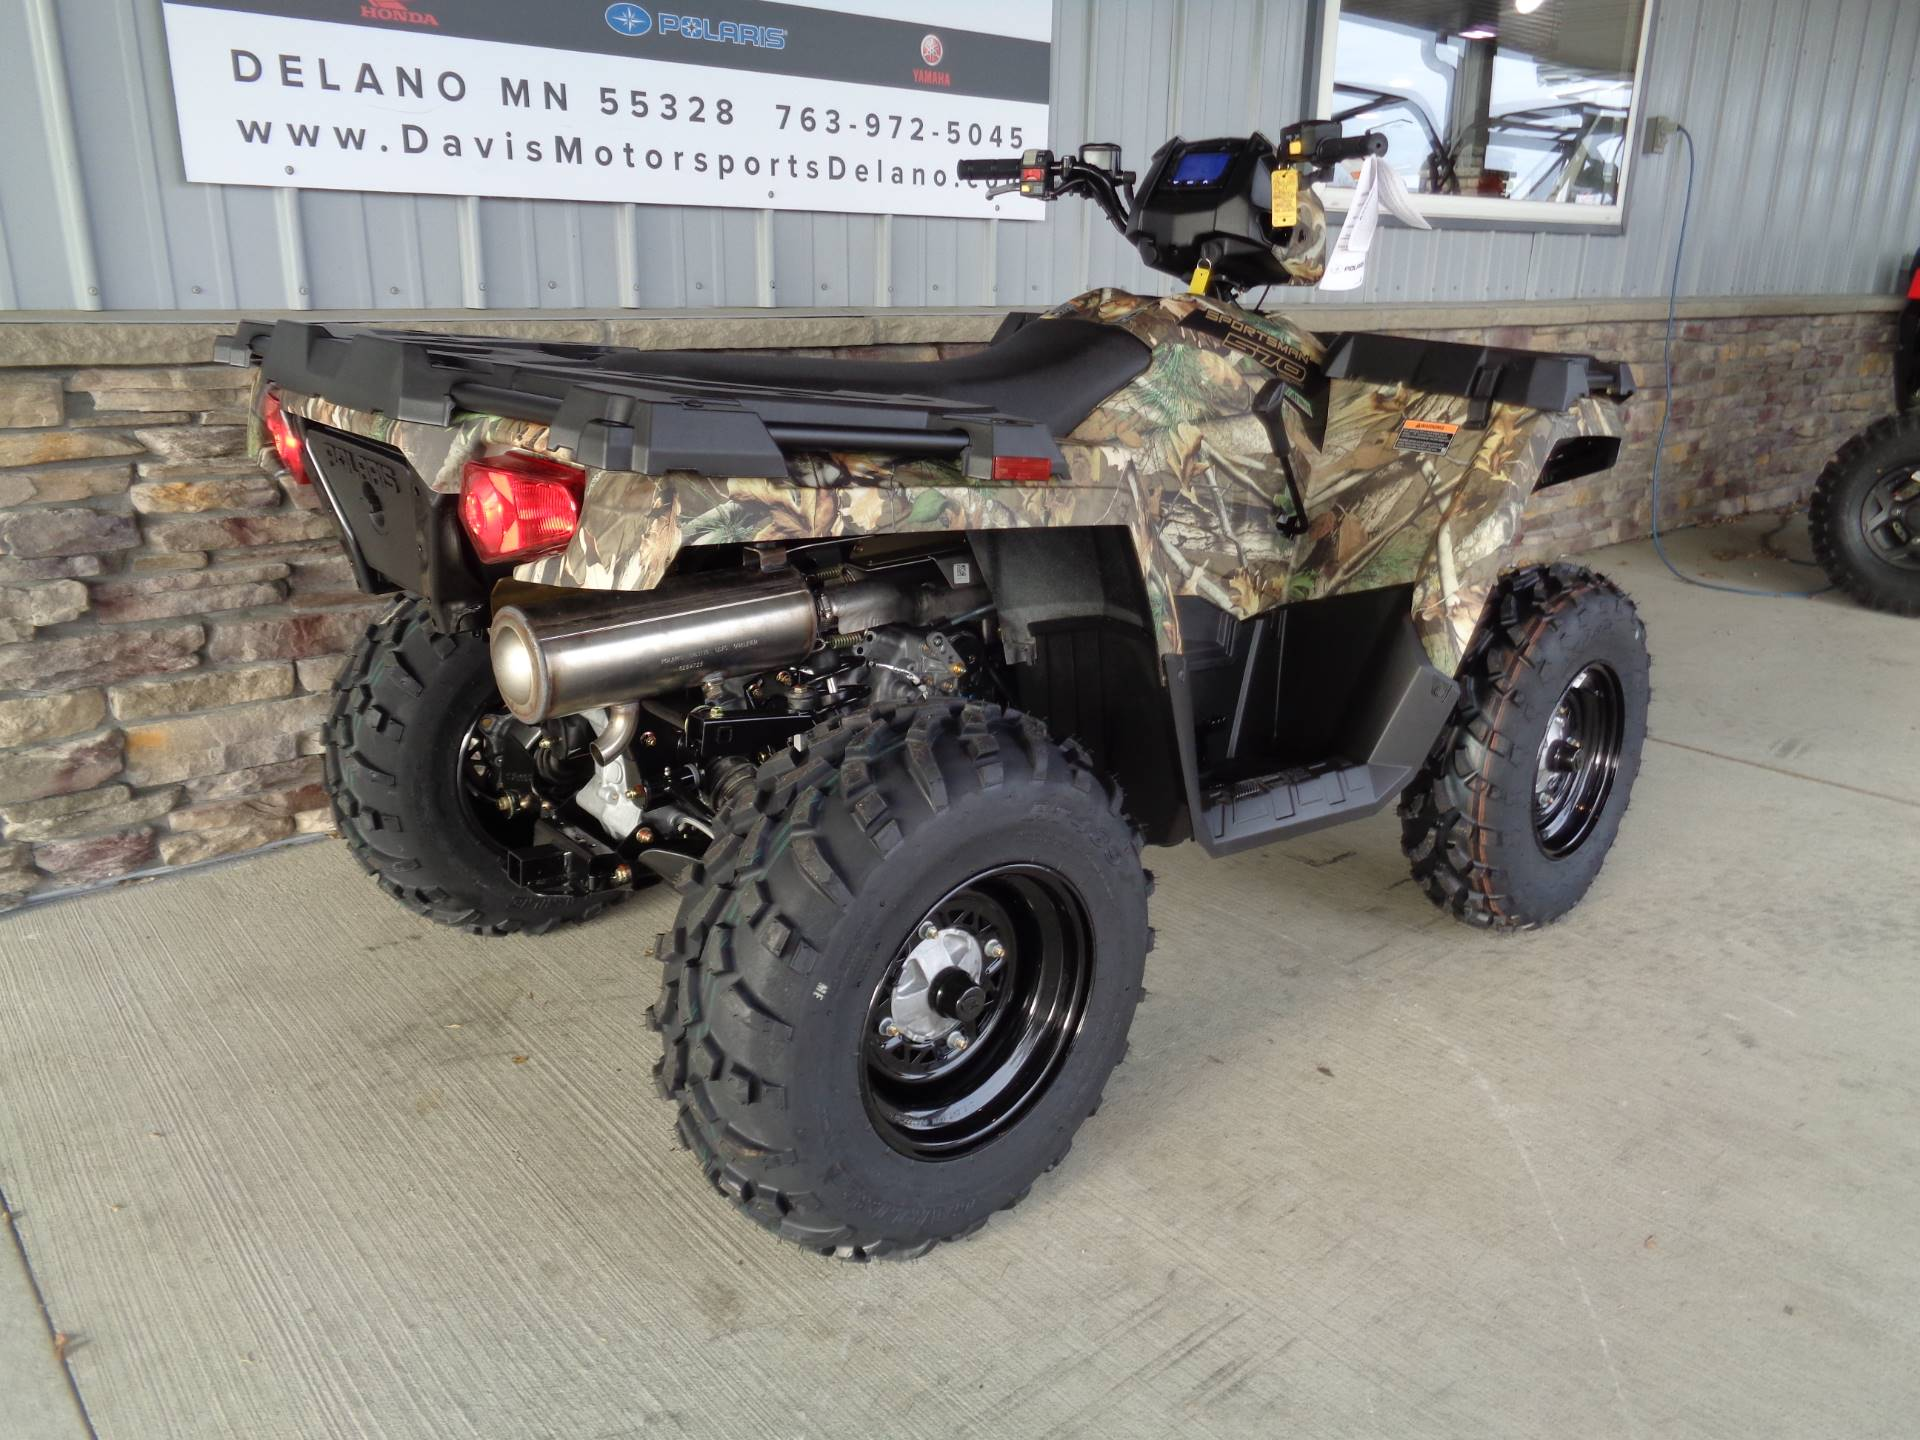 2019 Polaris Sportsman 570 EPS Camo in Delano, Minnesota - Photo 5